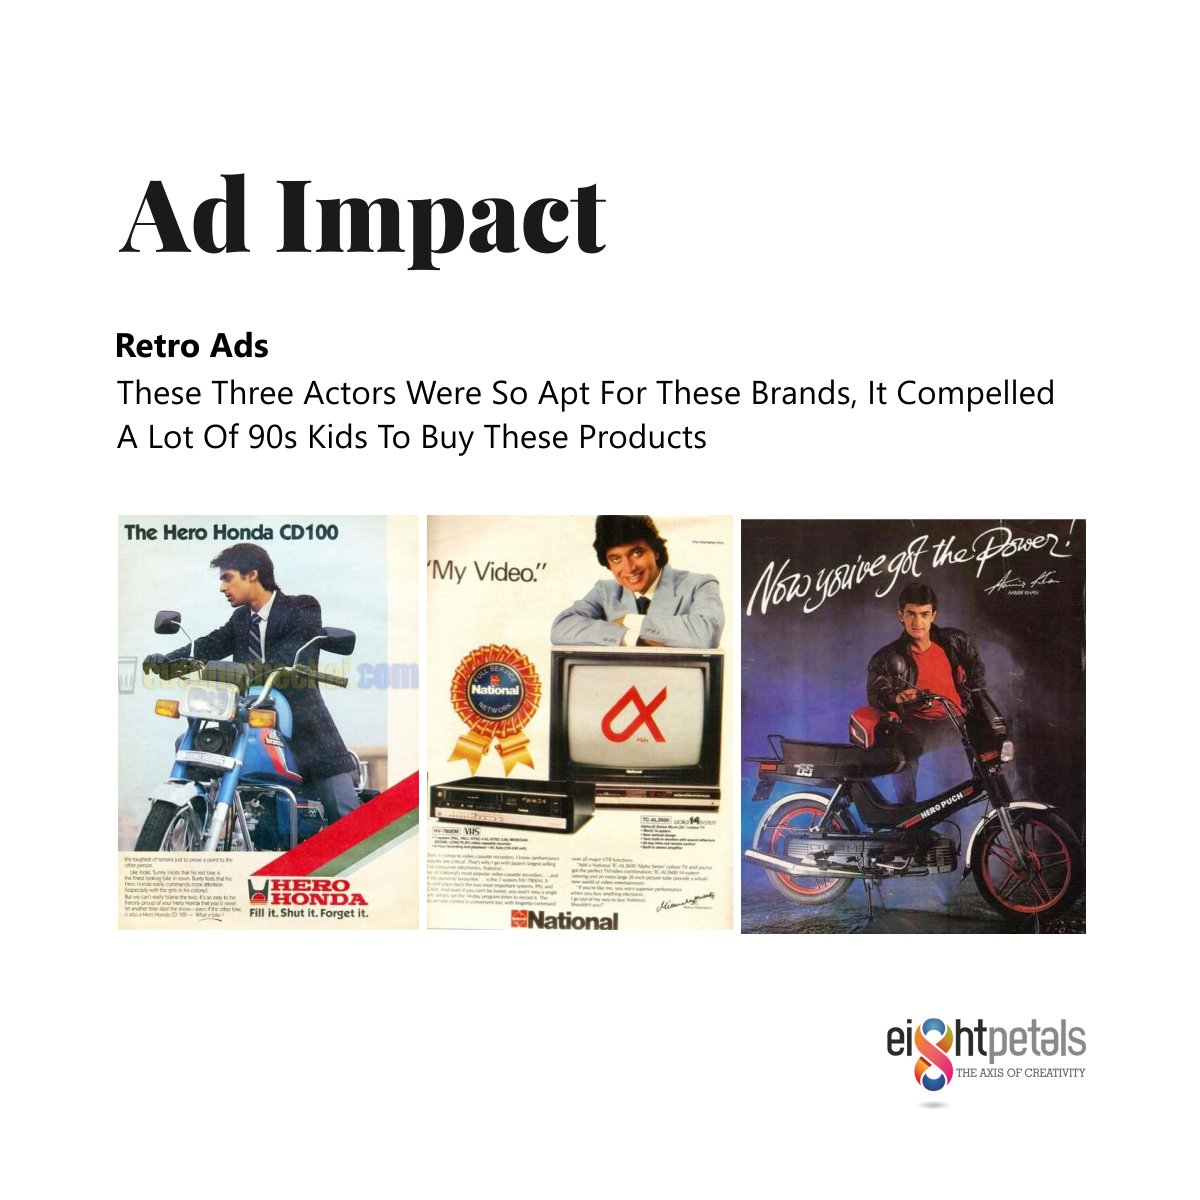 #AdImpact - Some brands understand their products so well, they know which person will make their product shine!  #CelebrityEndorsement #Brands #HeroHonda #SalmanKhan #MithunChakraborty #AamirKhan #Classic #Marketing #AgencyLife #EightPetals